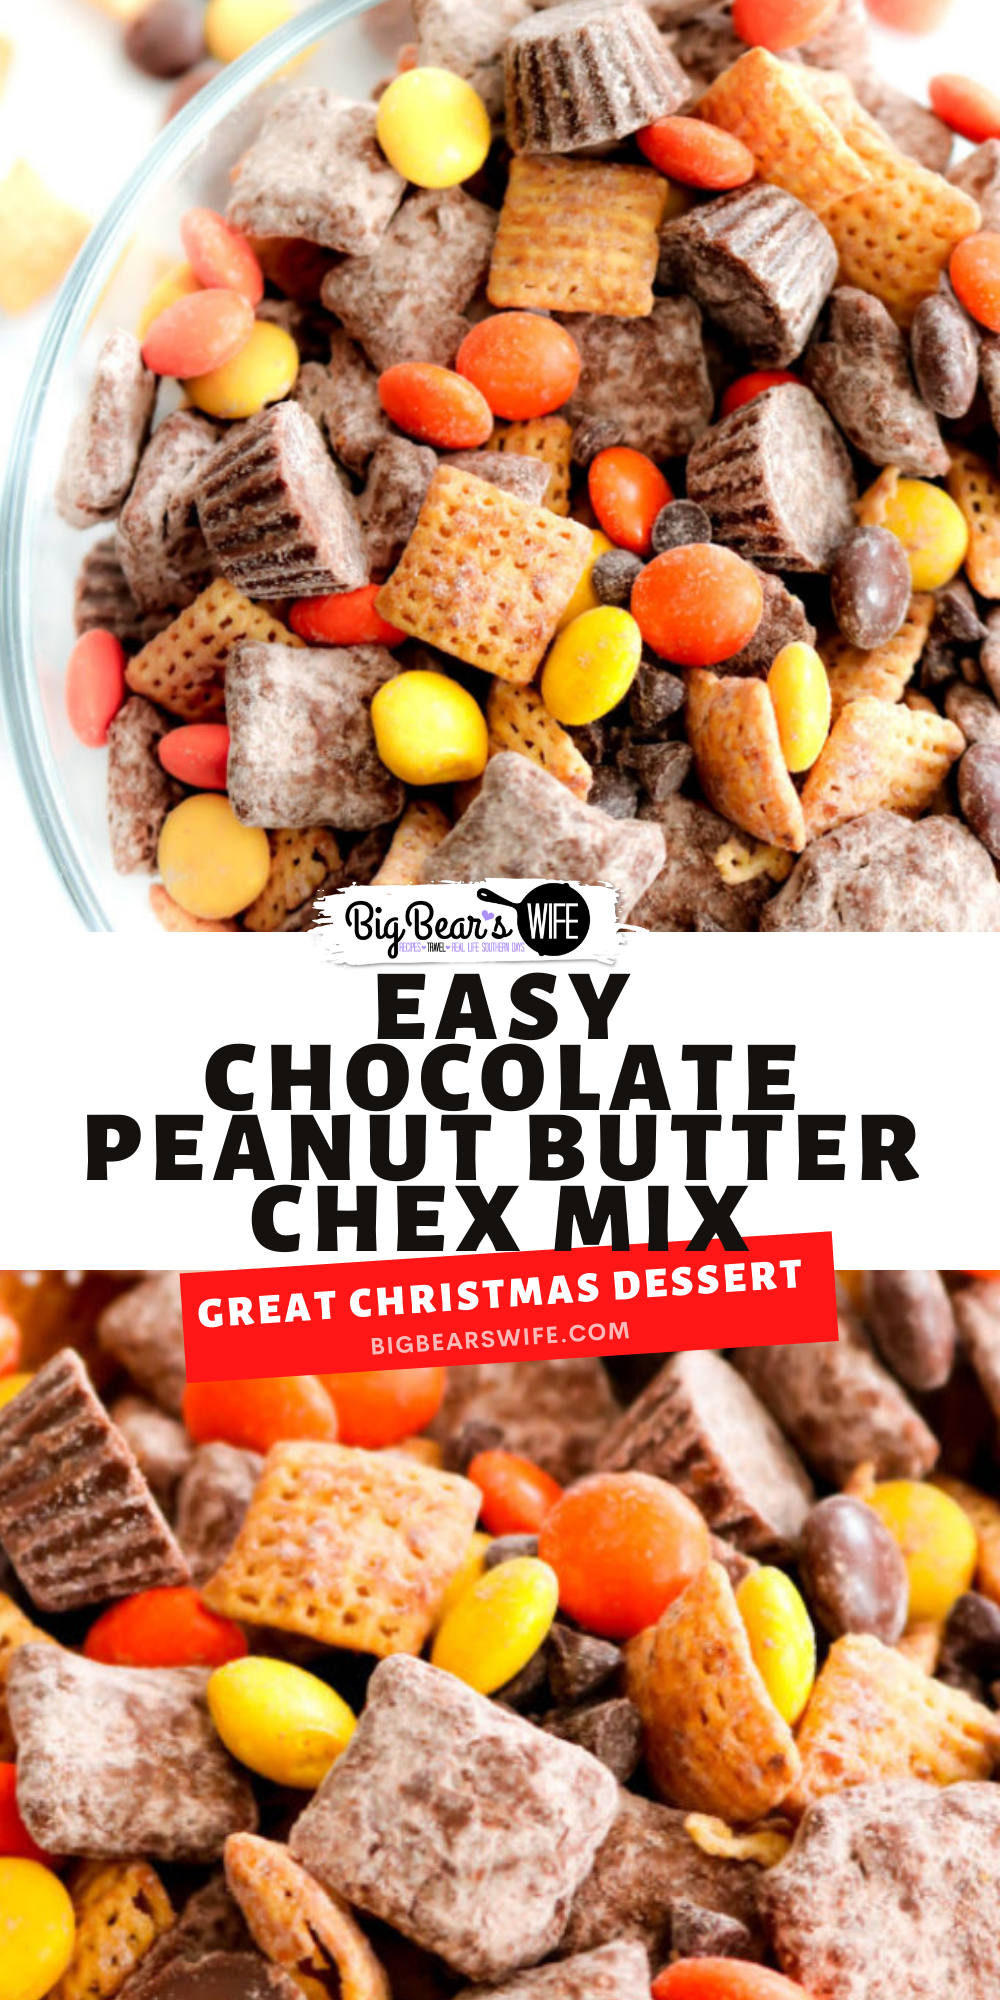 This Chocolate Peanut Butter Chex Mix is what dreams are made of! It's packed with tons of chocolate and peanut butter including peanut butter cereal, mini peanut butter cups and Reese's pieces! via @bigbearswife